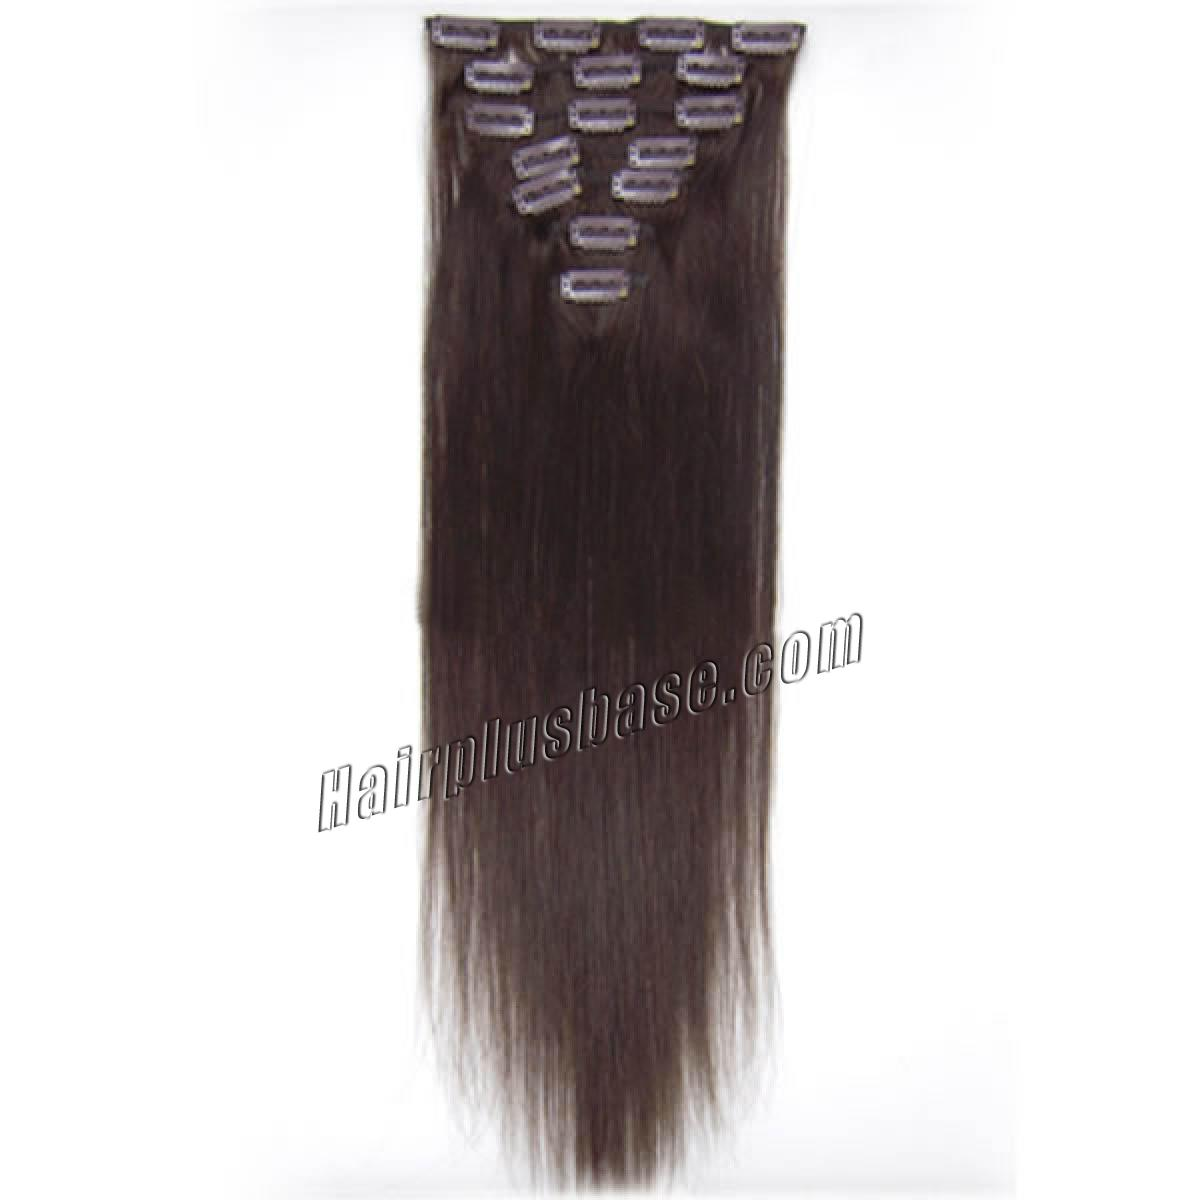 15 Inch 2 Dark Brown Clip In Human Hair Extensions 7pcs